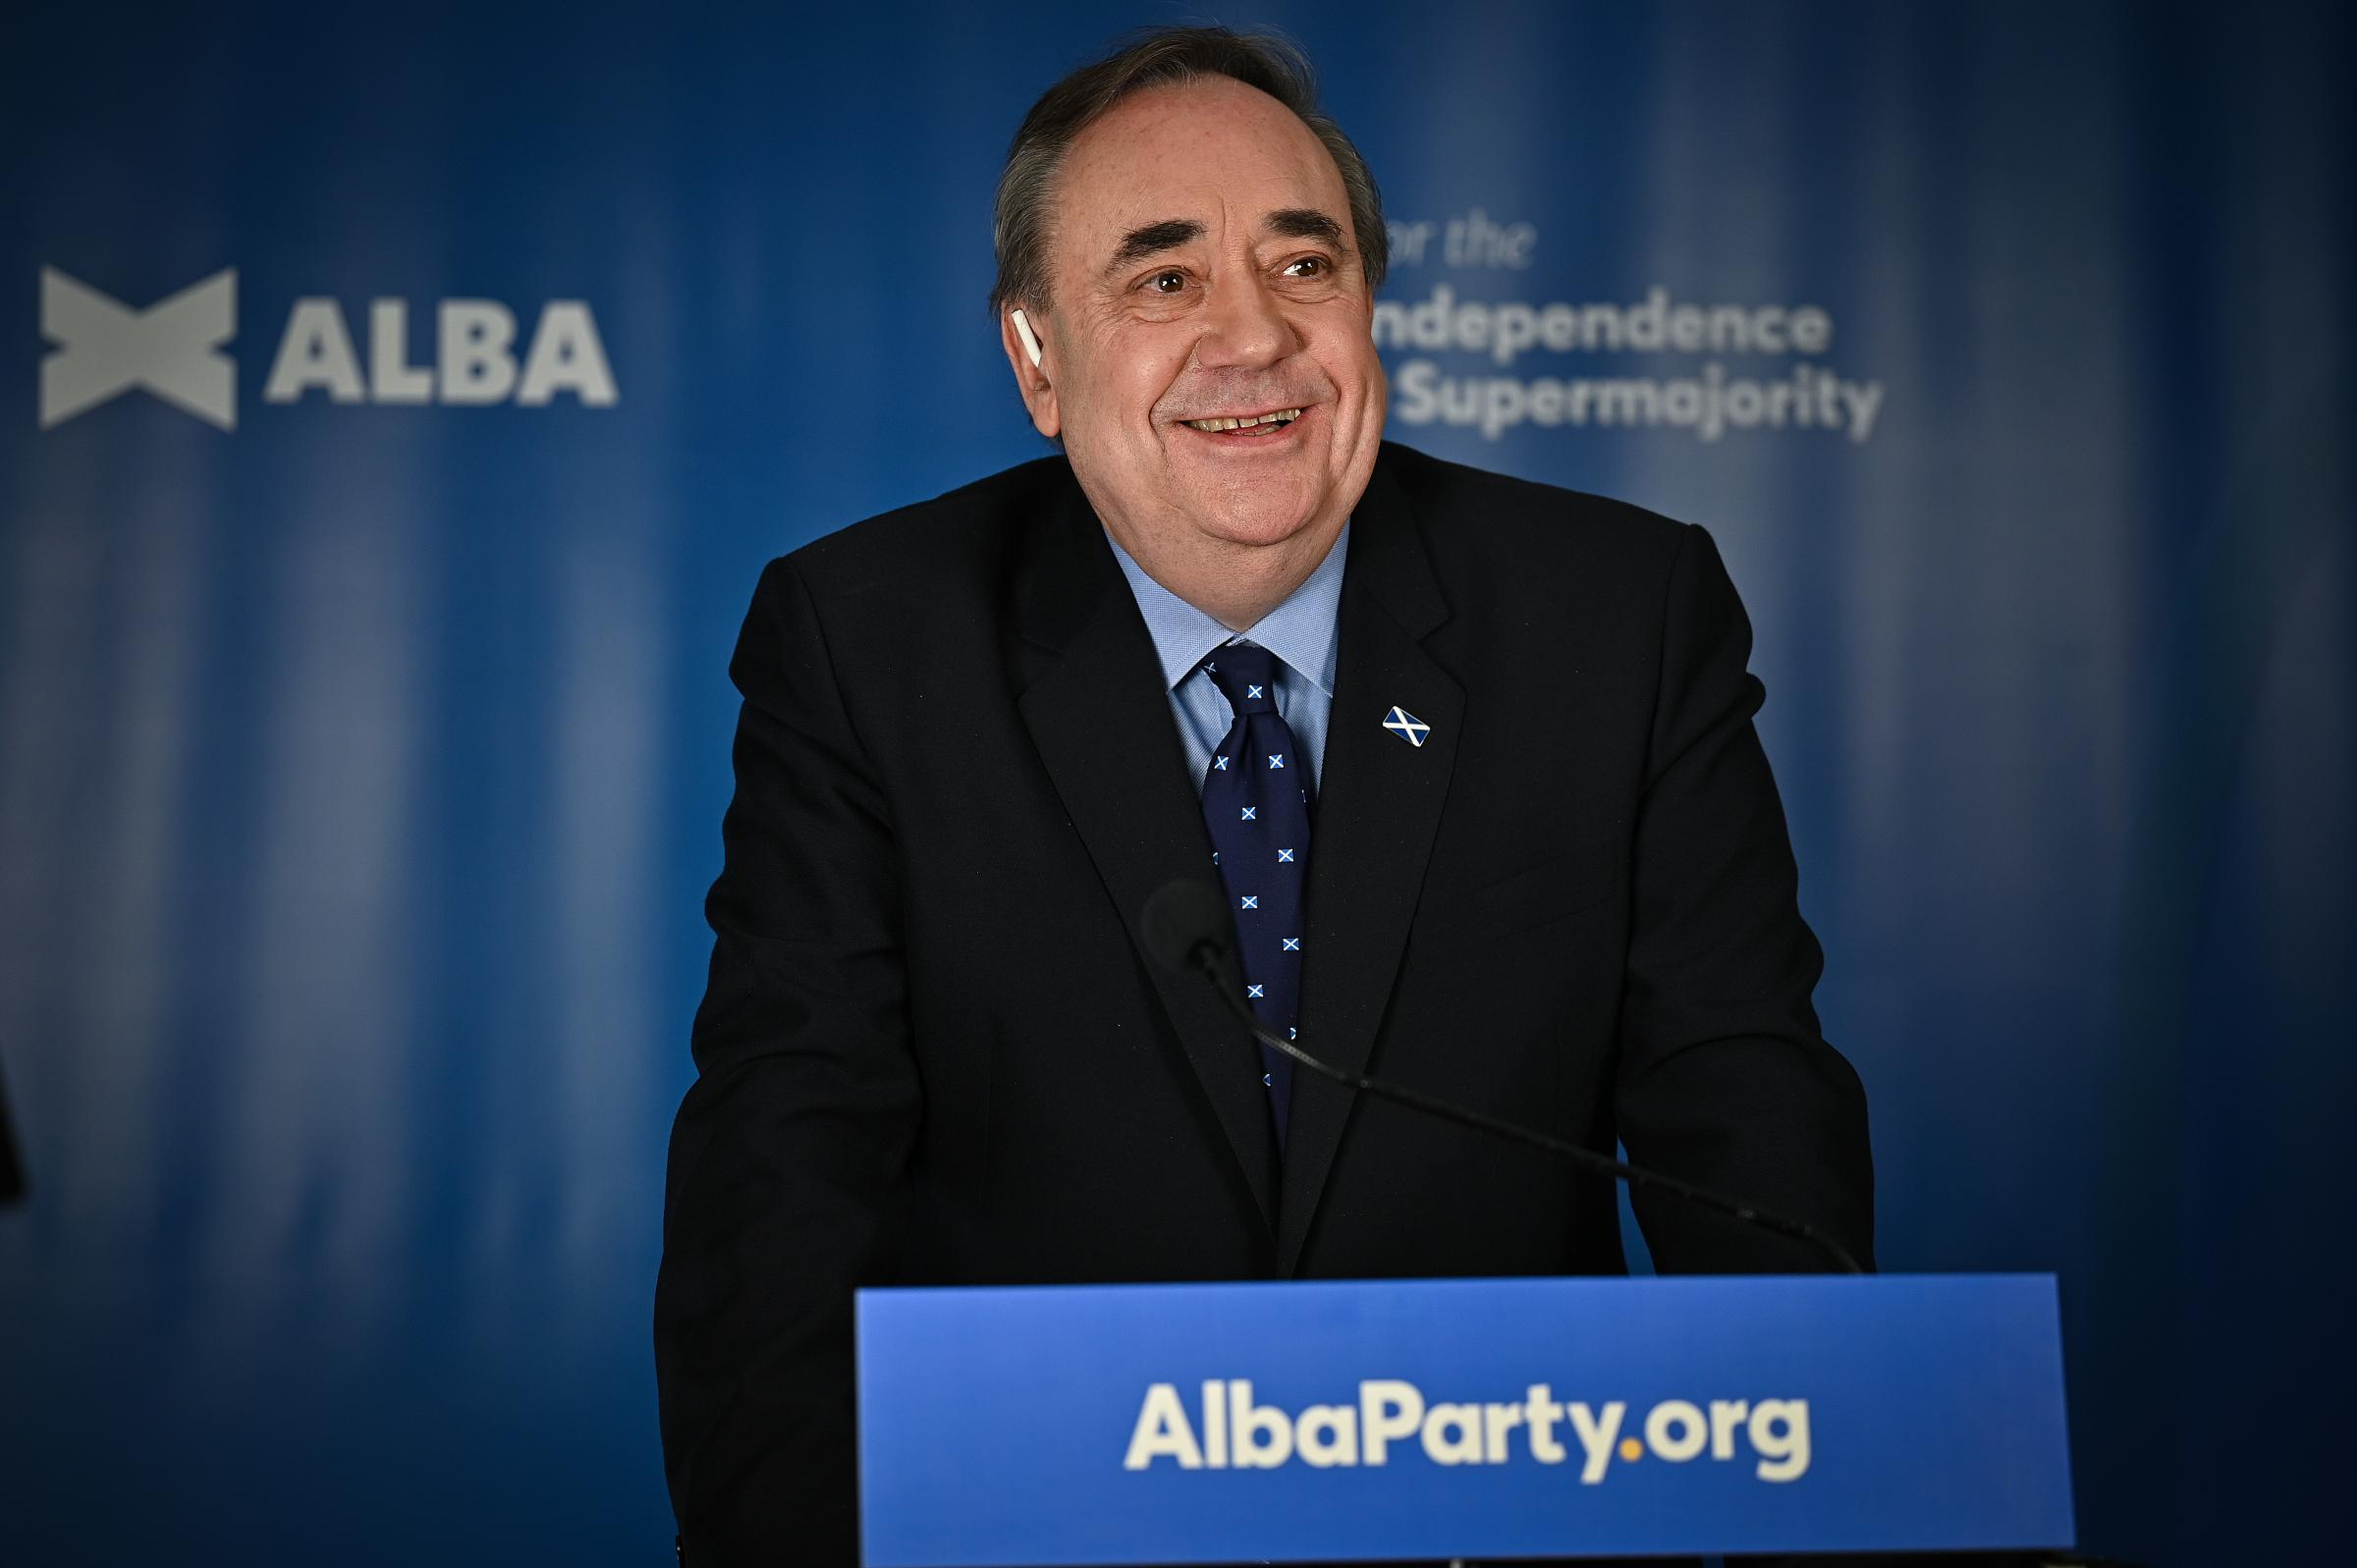 'The shame of Scotland': Alex Salmond in blistering attack on BBC executives